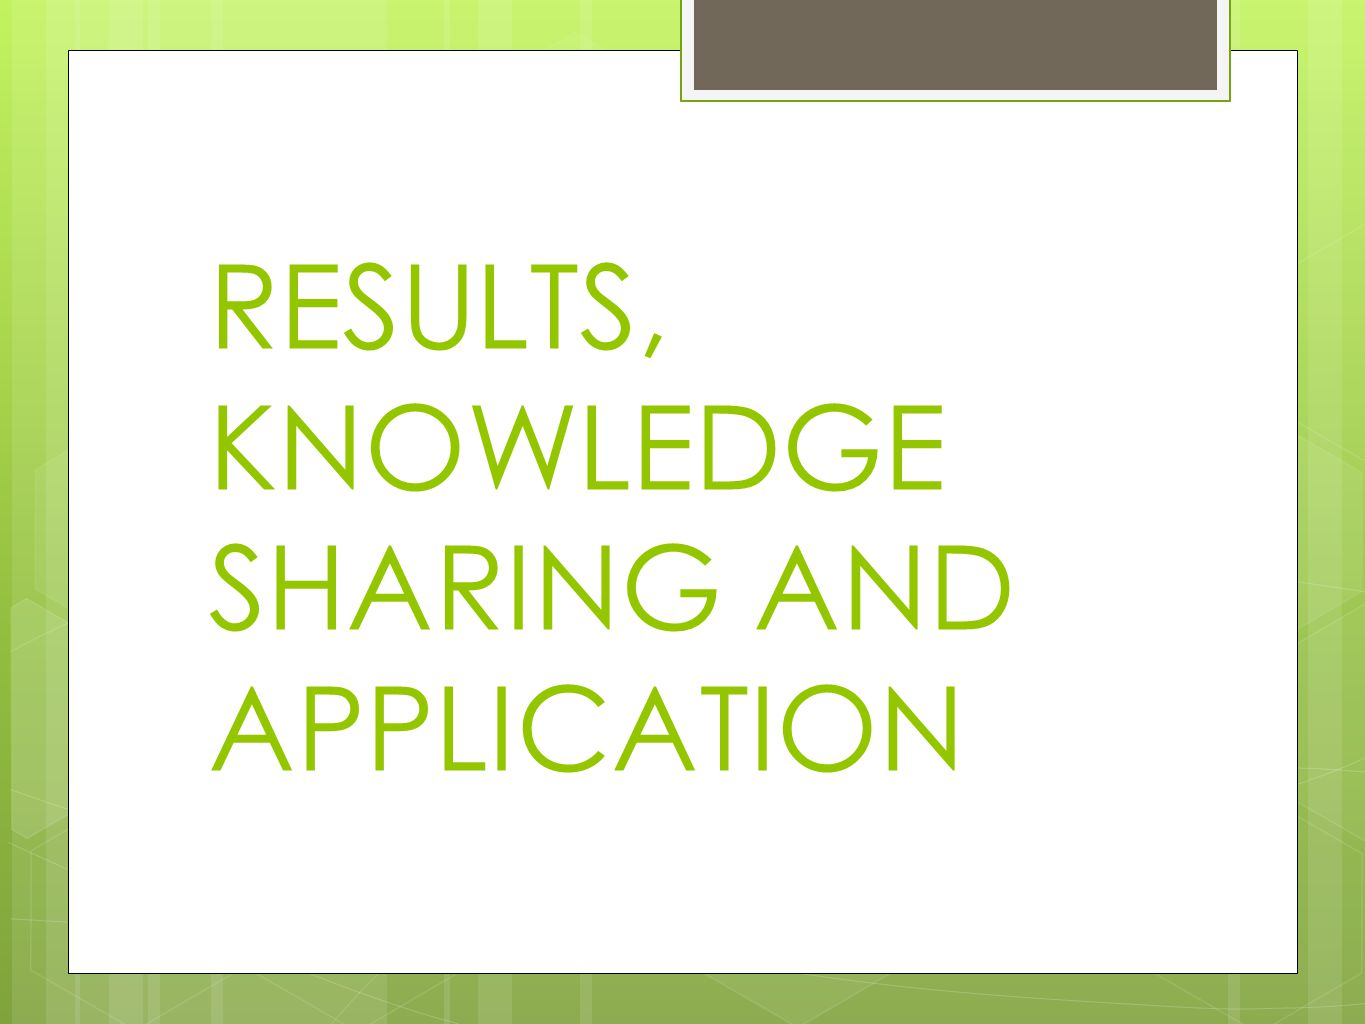 RESULTS, KNOWLEDGE SHARING AND APPLICATION